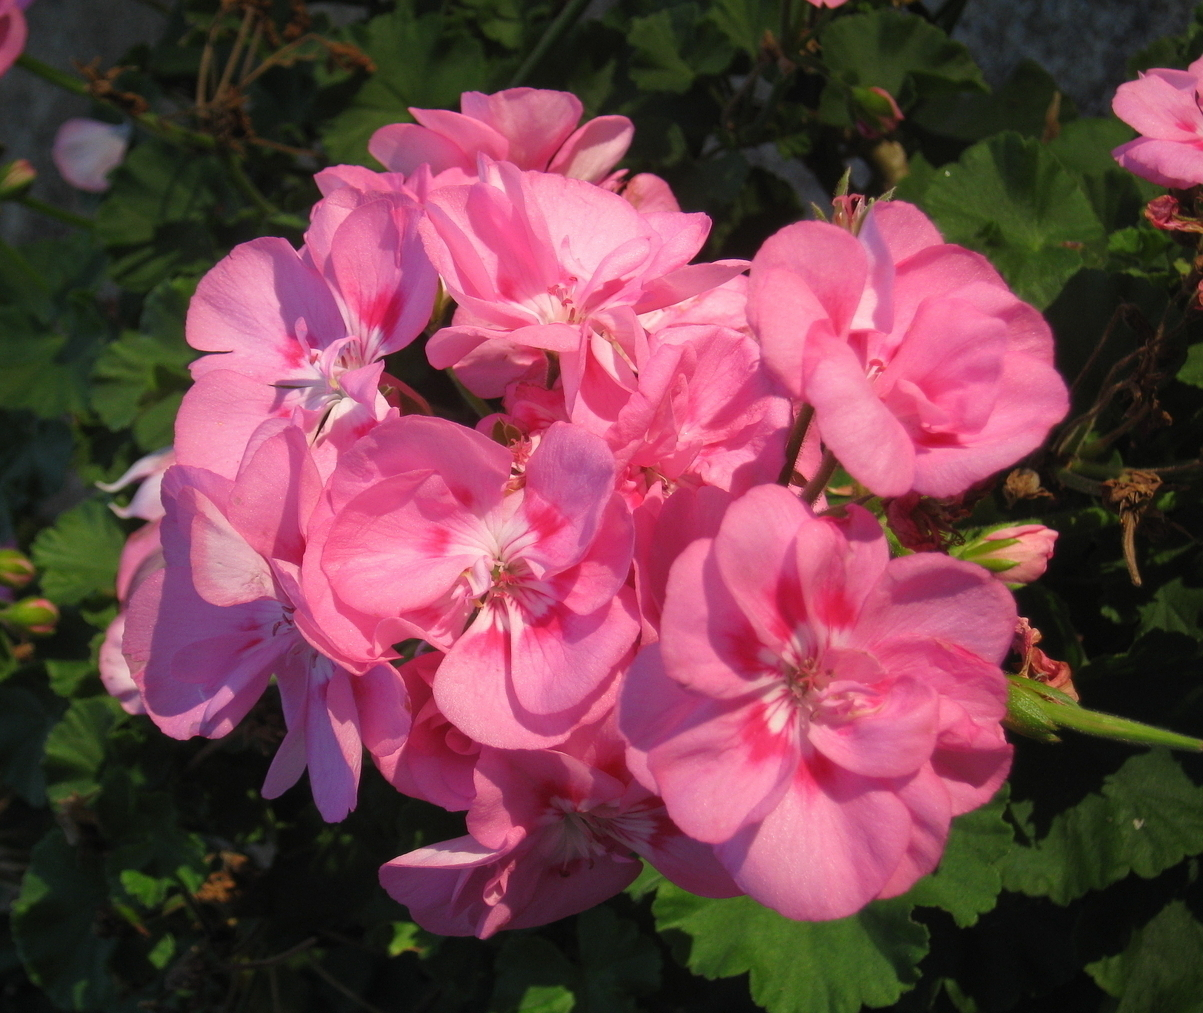 Like this geranium, many flowers sold as annuals in cold winter climates can become perennials by overwintering them inside. Photo by Steve Bender.